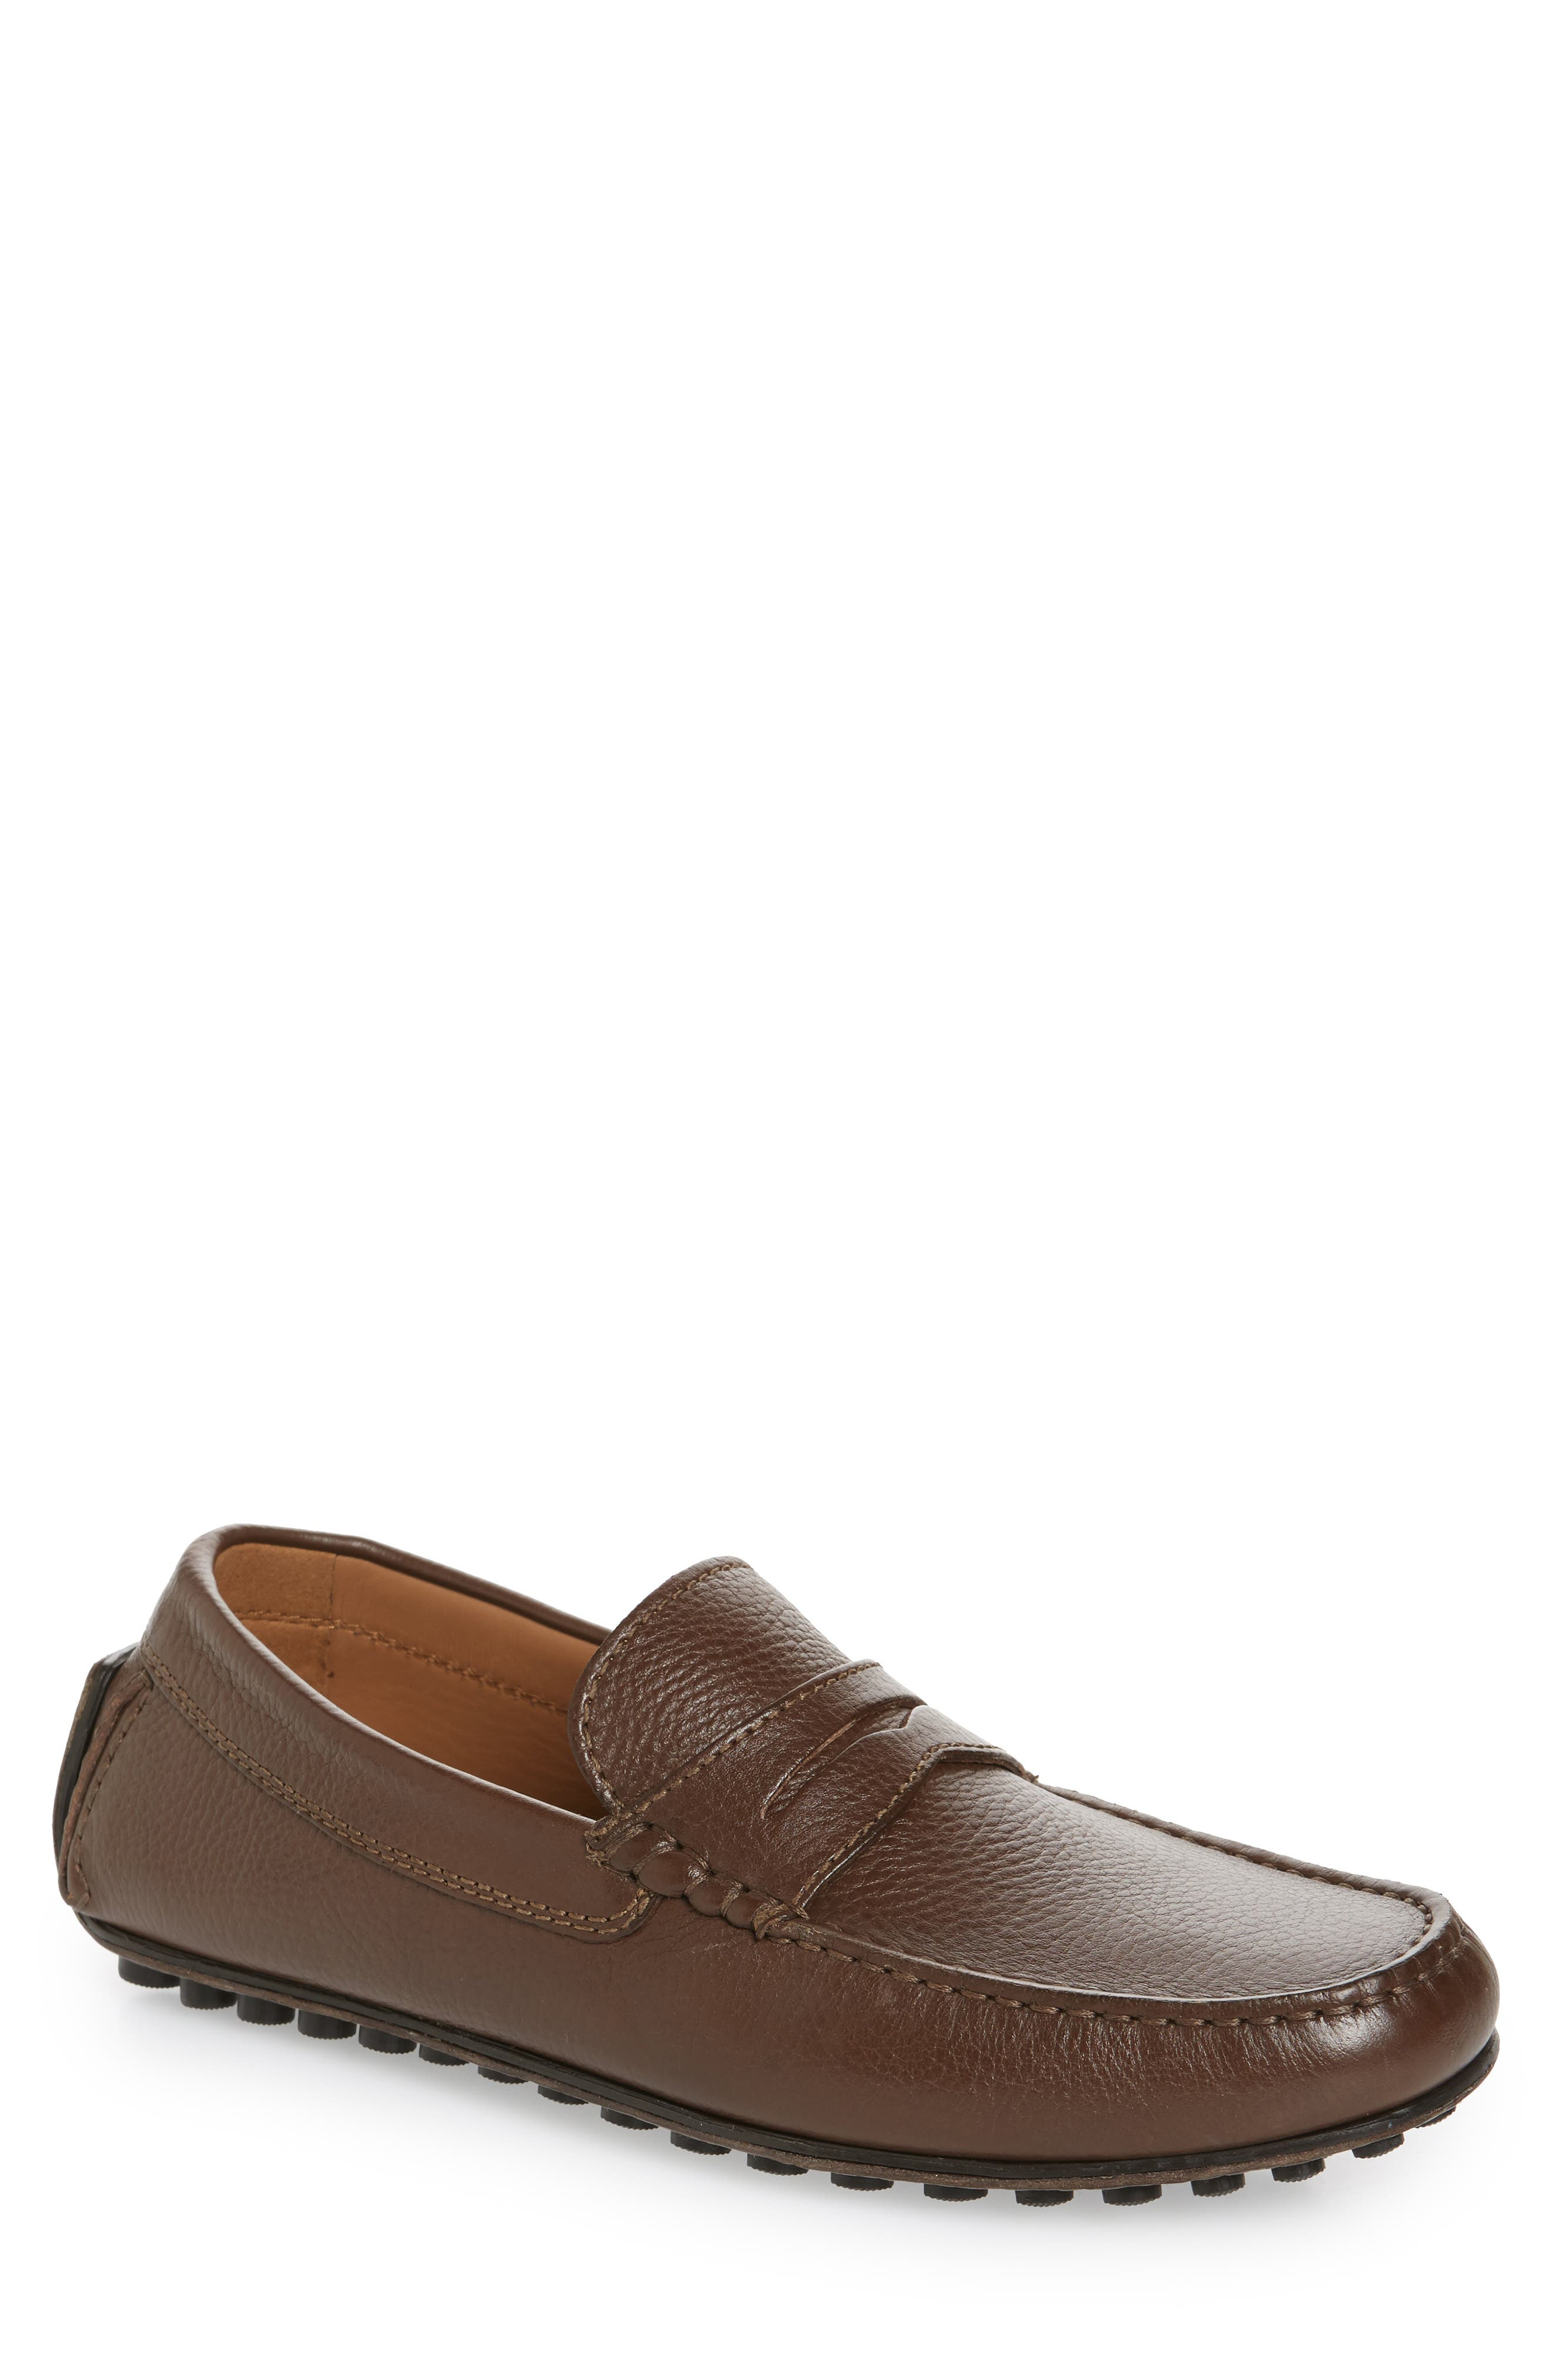 Le Mans Penny Driving Moccasin,                         Main,                         color, BROWN